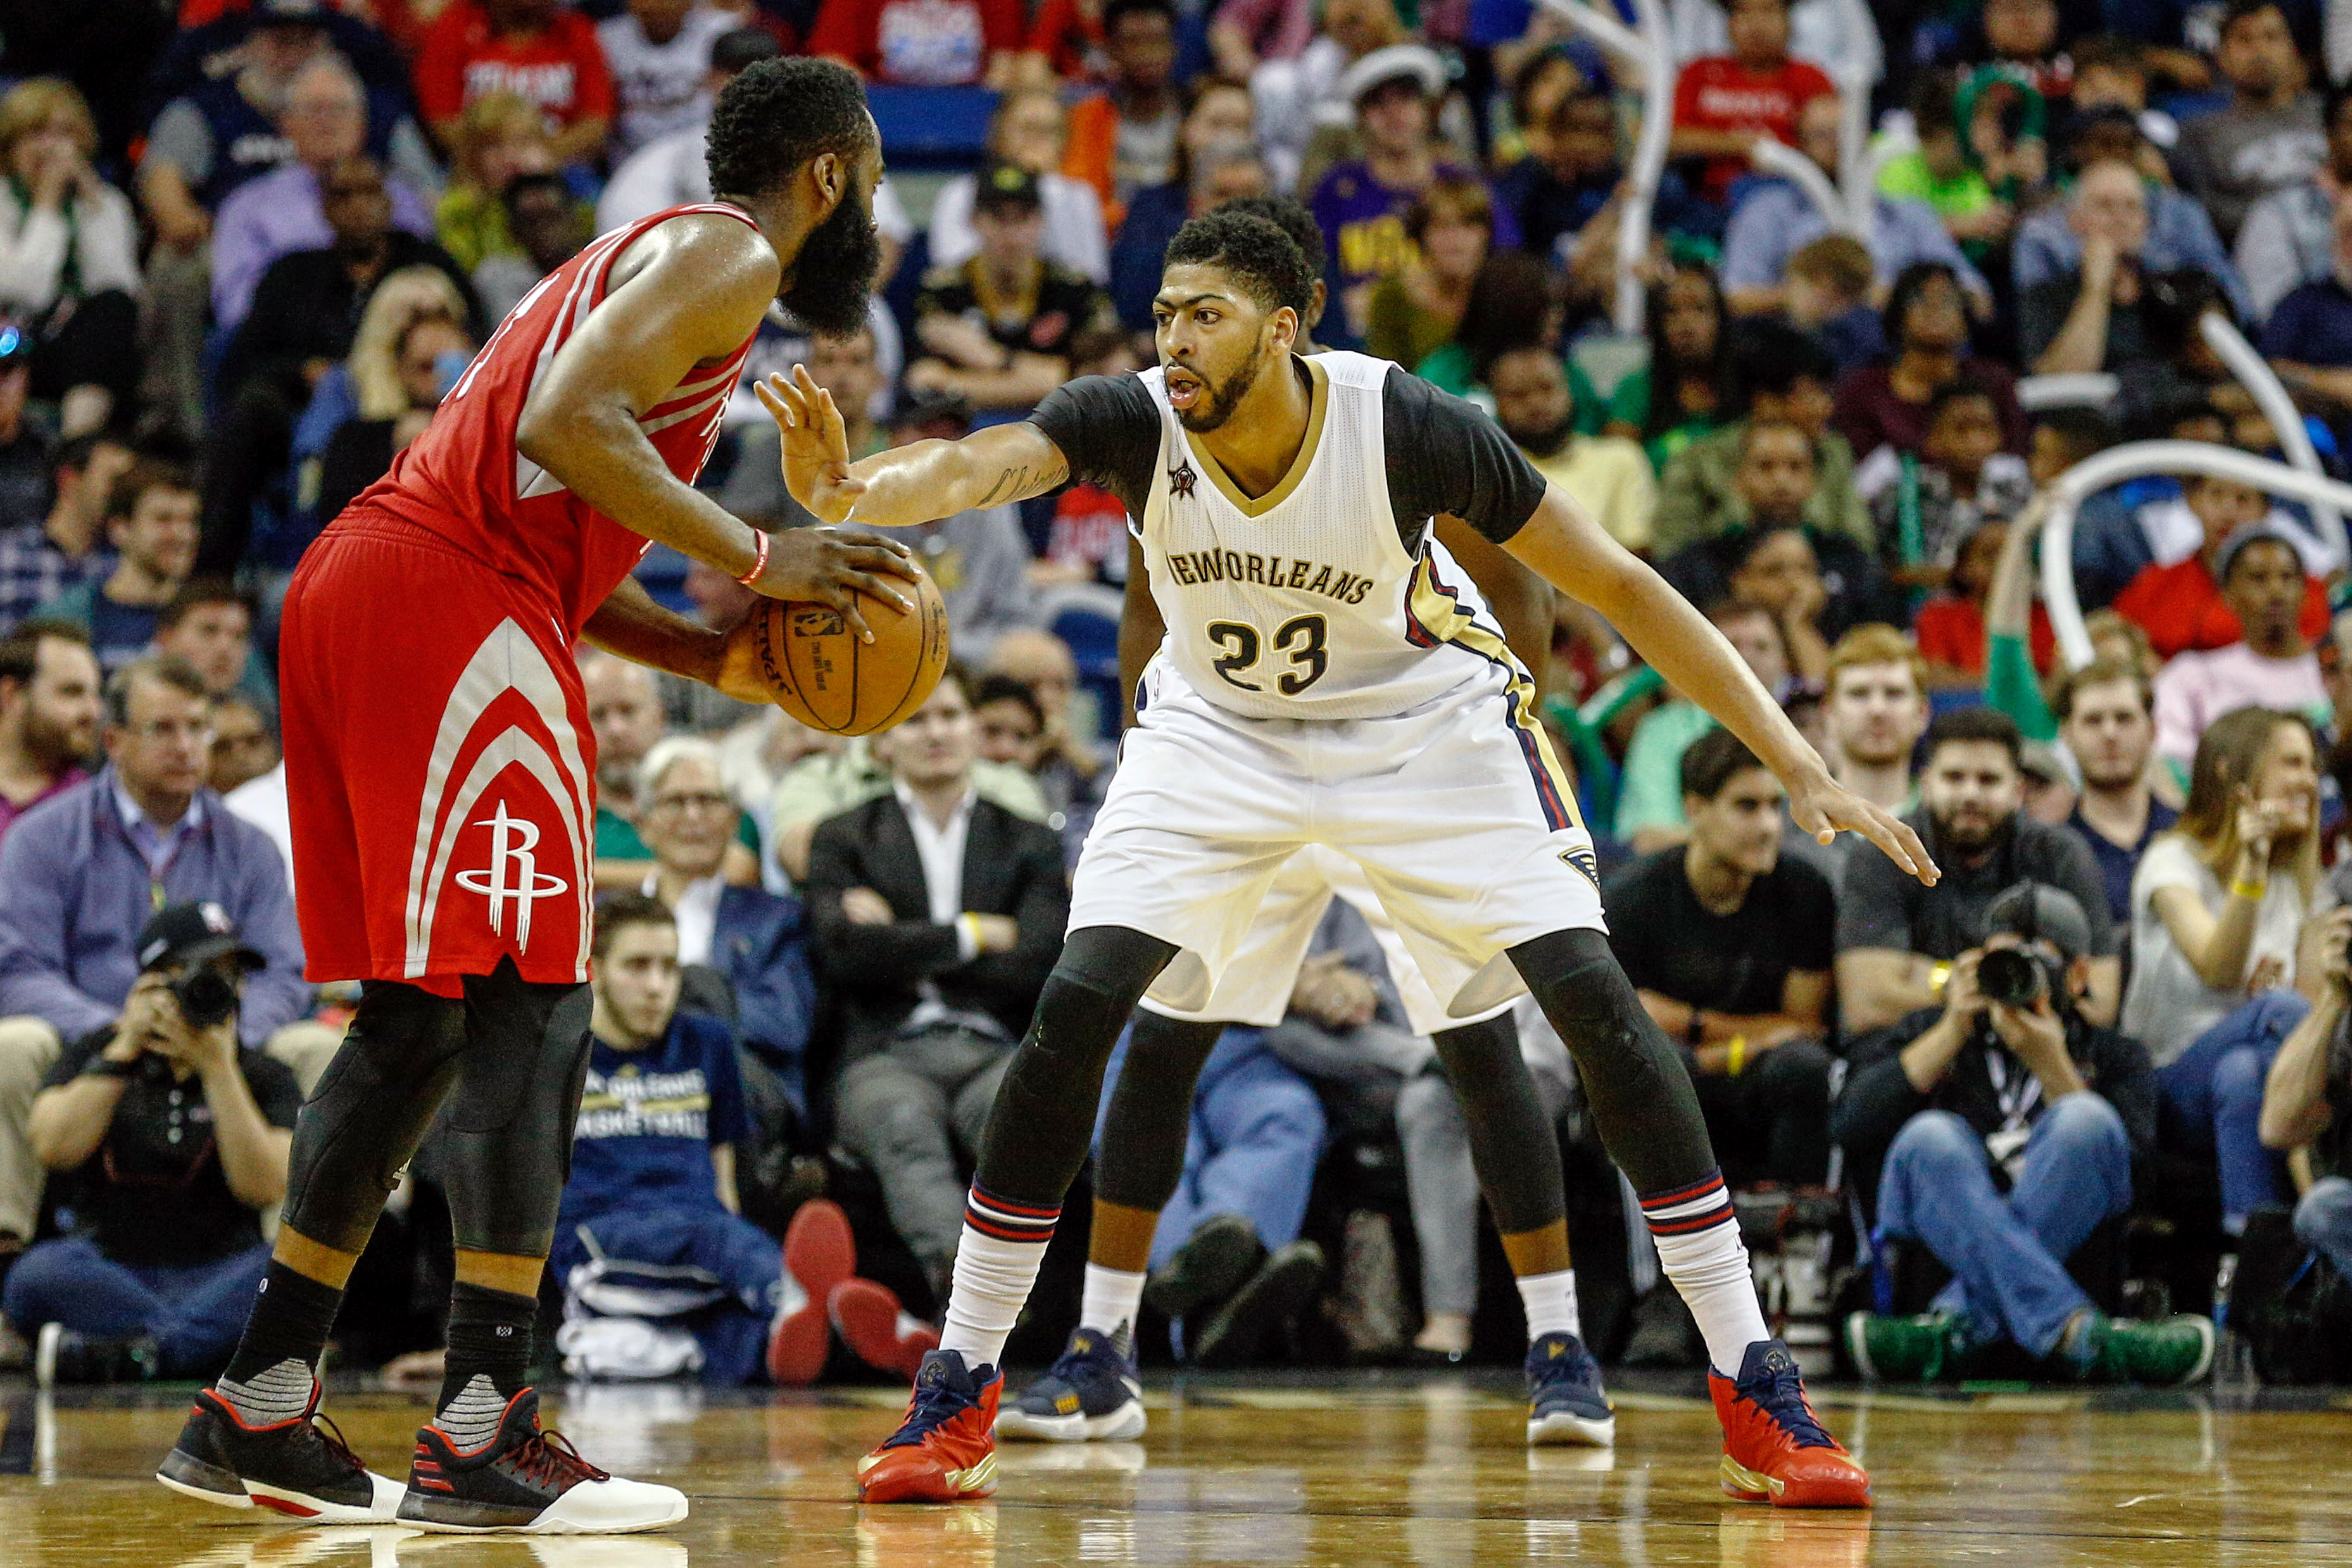 9951727-nba-houston-rockets-at-new-orleans-pelicans-2